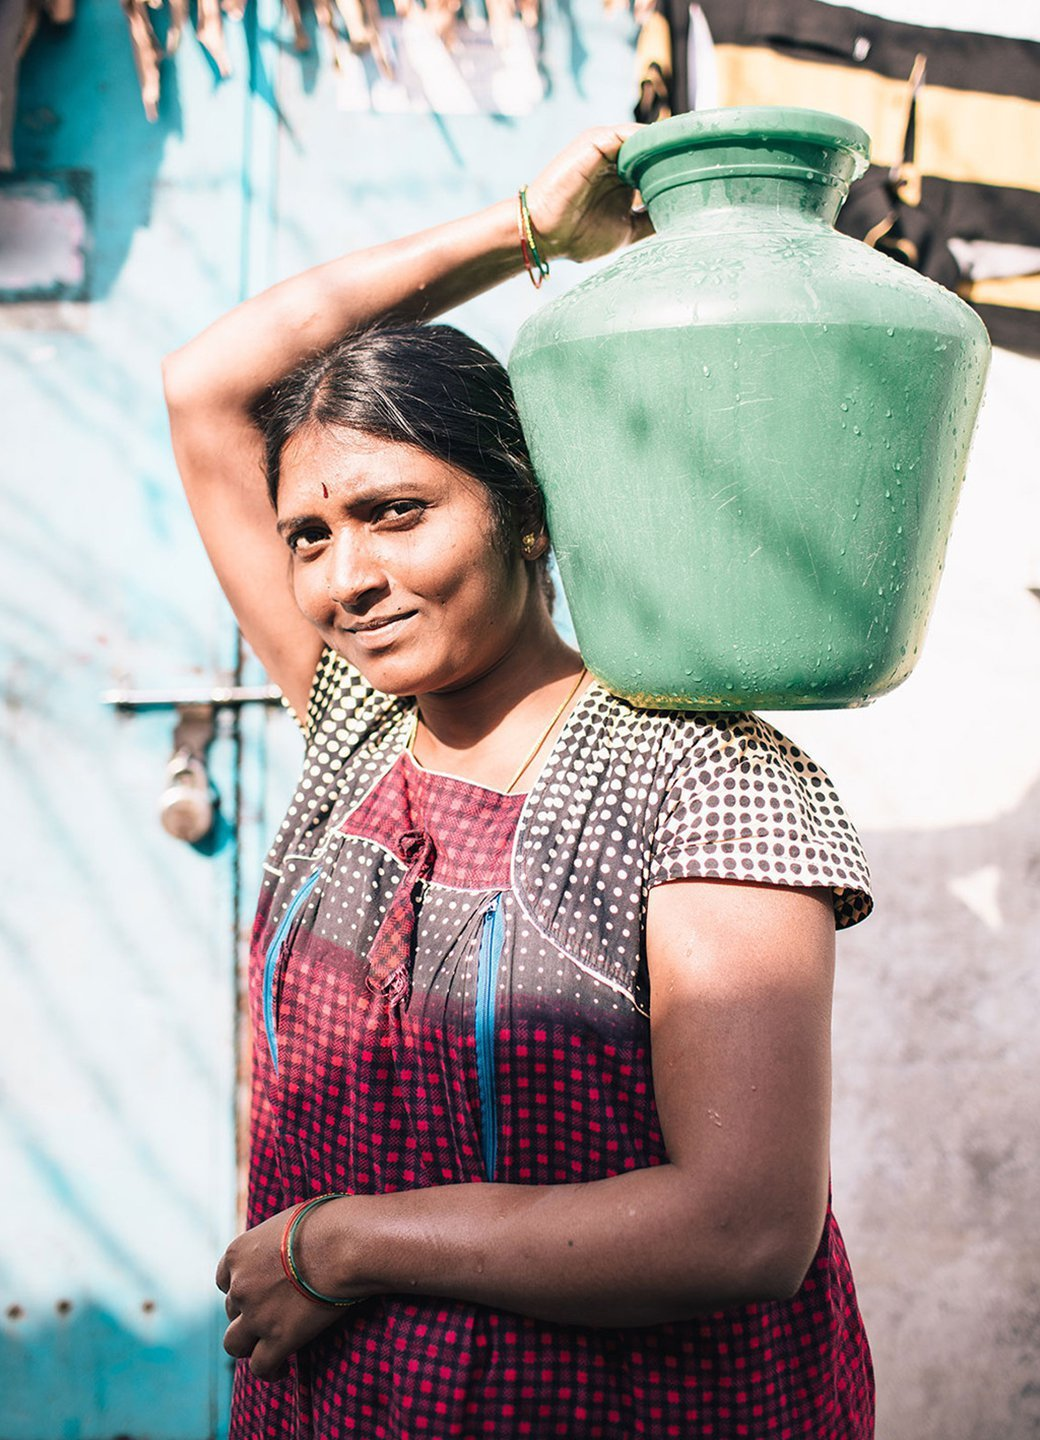 A woman carries a water vessel in Hyderabad, India